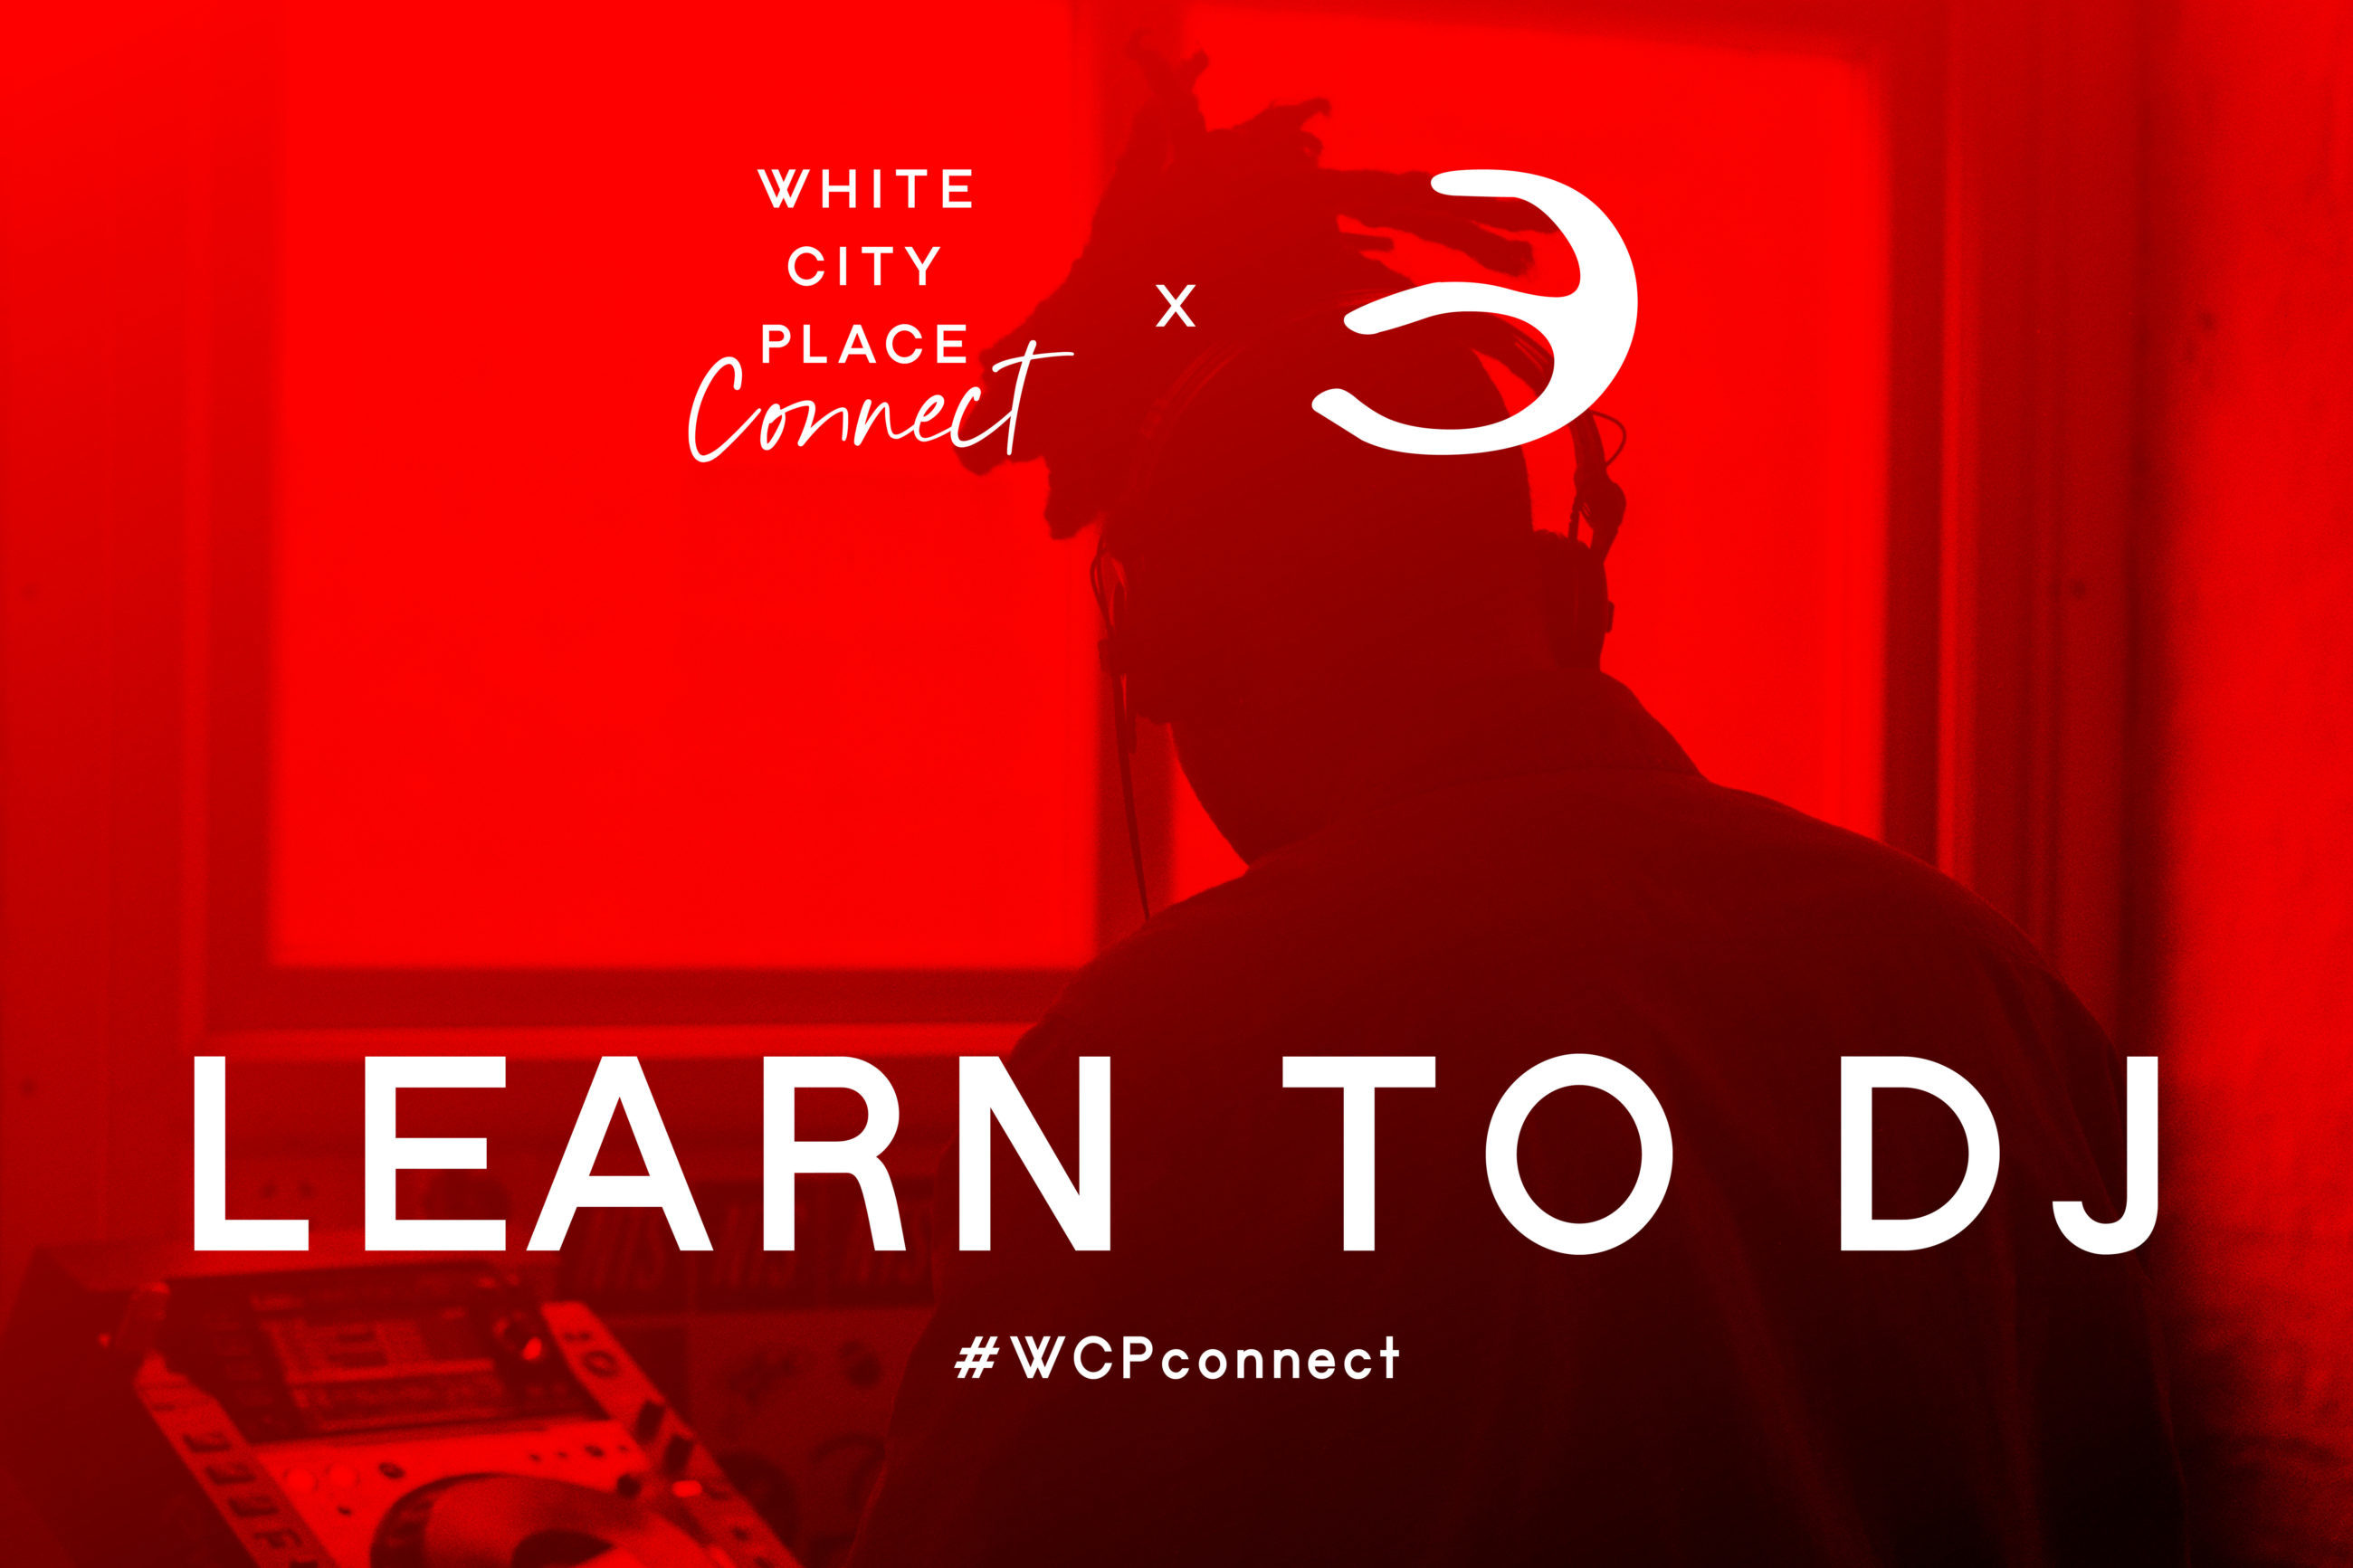 White City Place Connect: Learn to DJ Feature Image